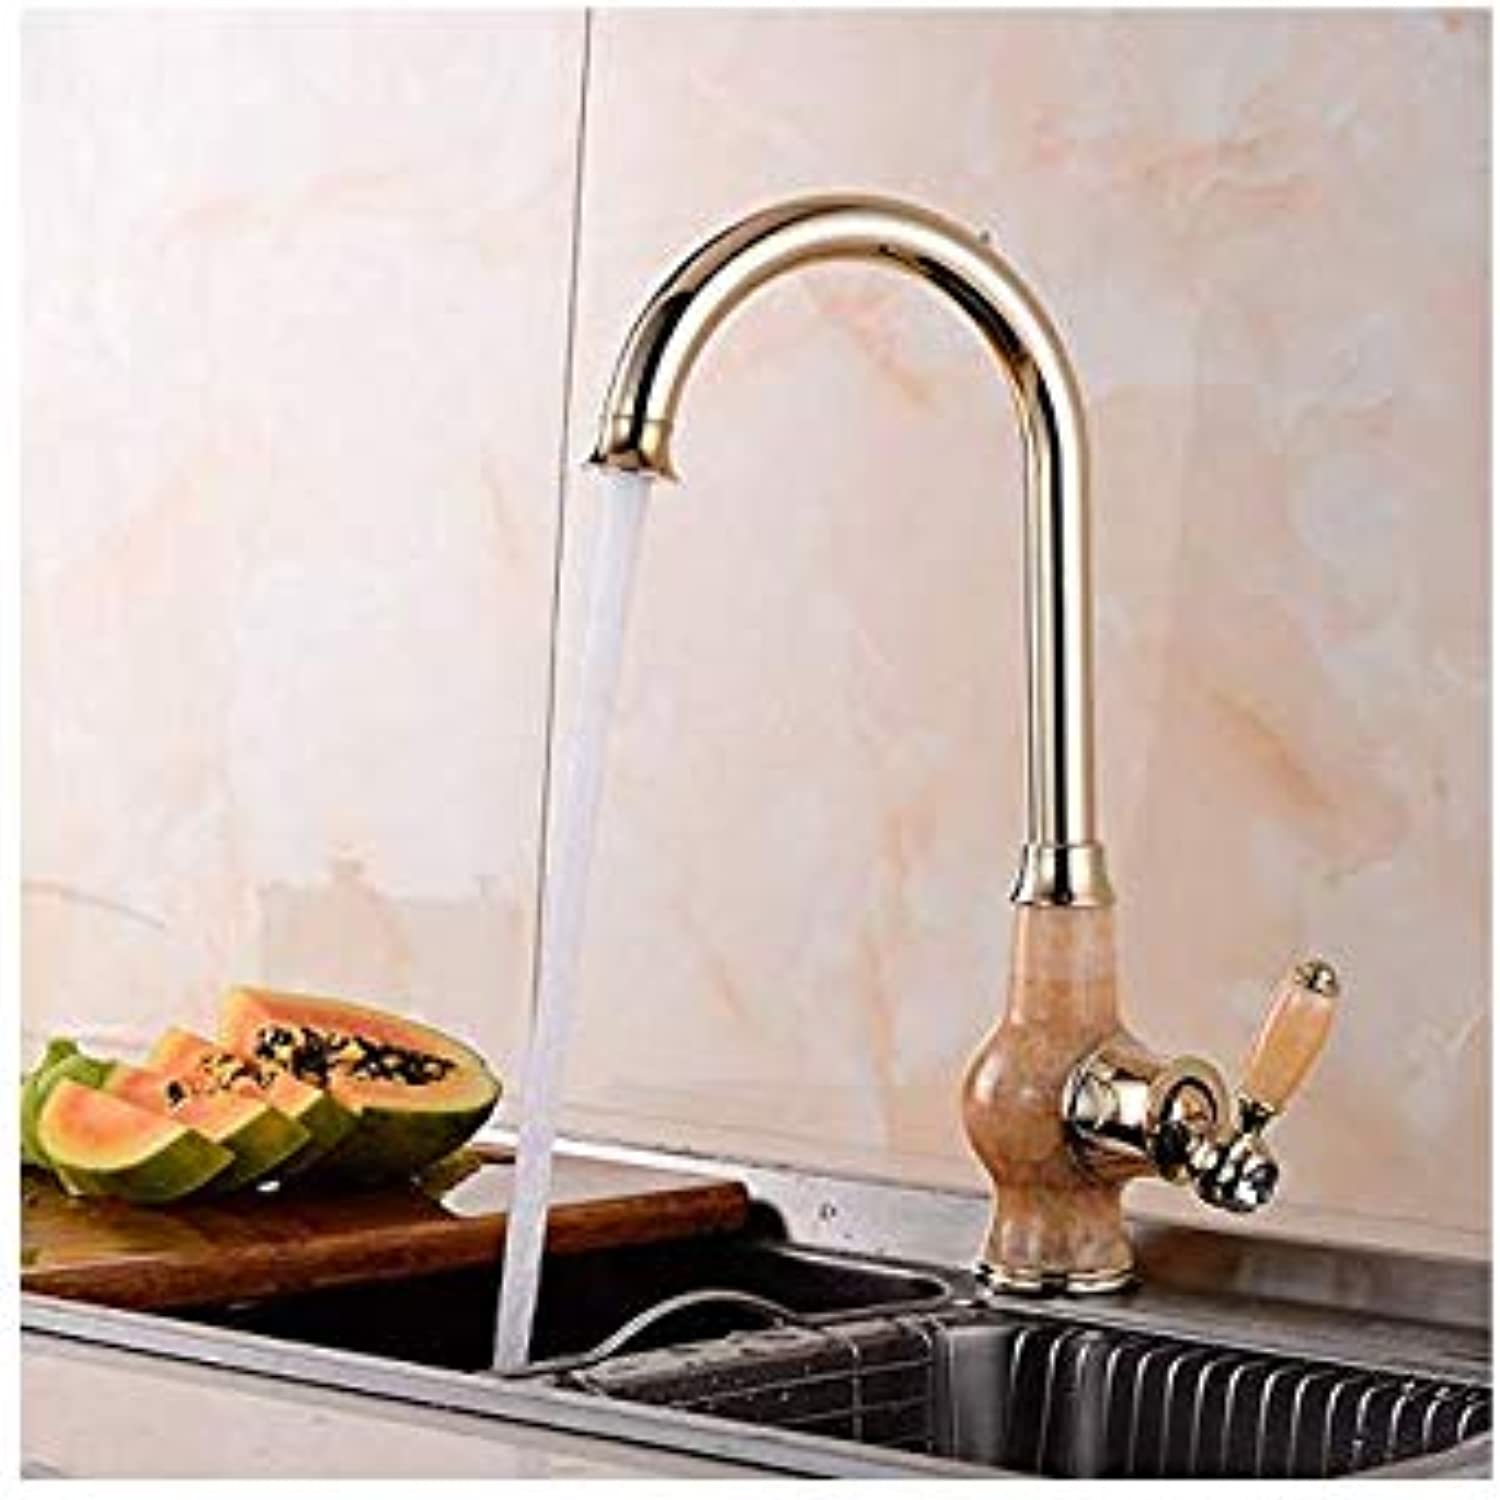 Water Tapfaucet Taps Jade Copper Table Top Basin Hot and Cold Faucet Kitchen Sink Can Be redated gold Antique Faucet, golden Jade